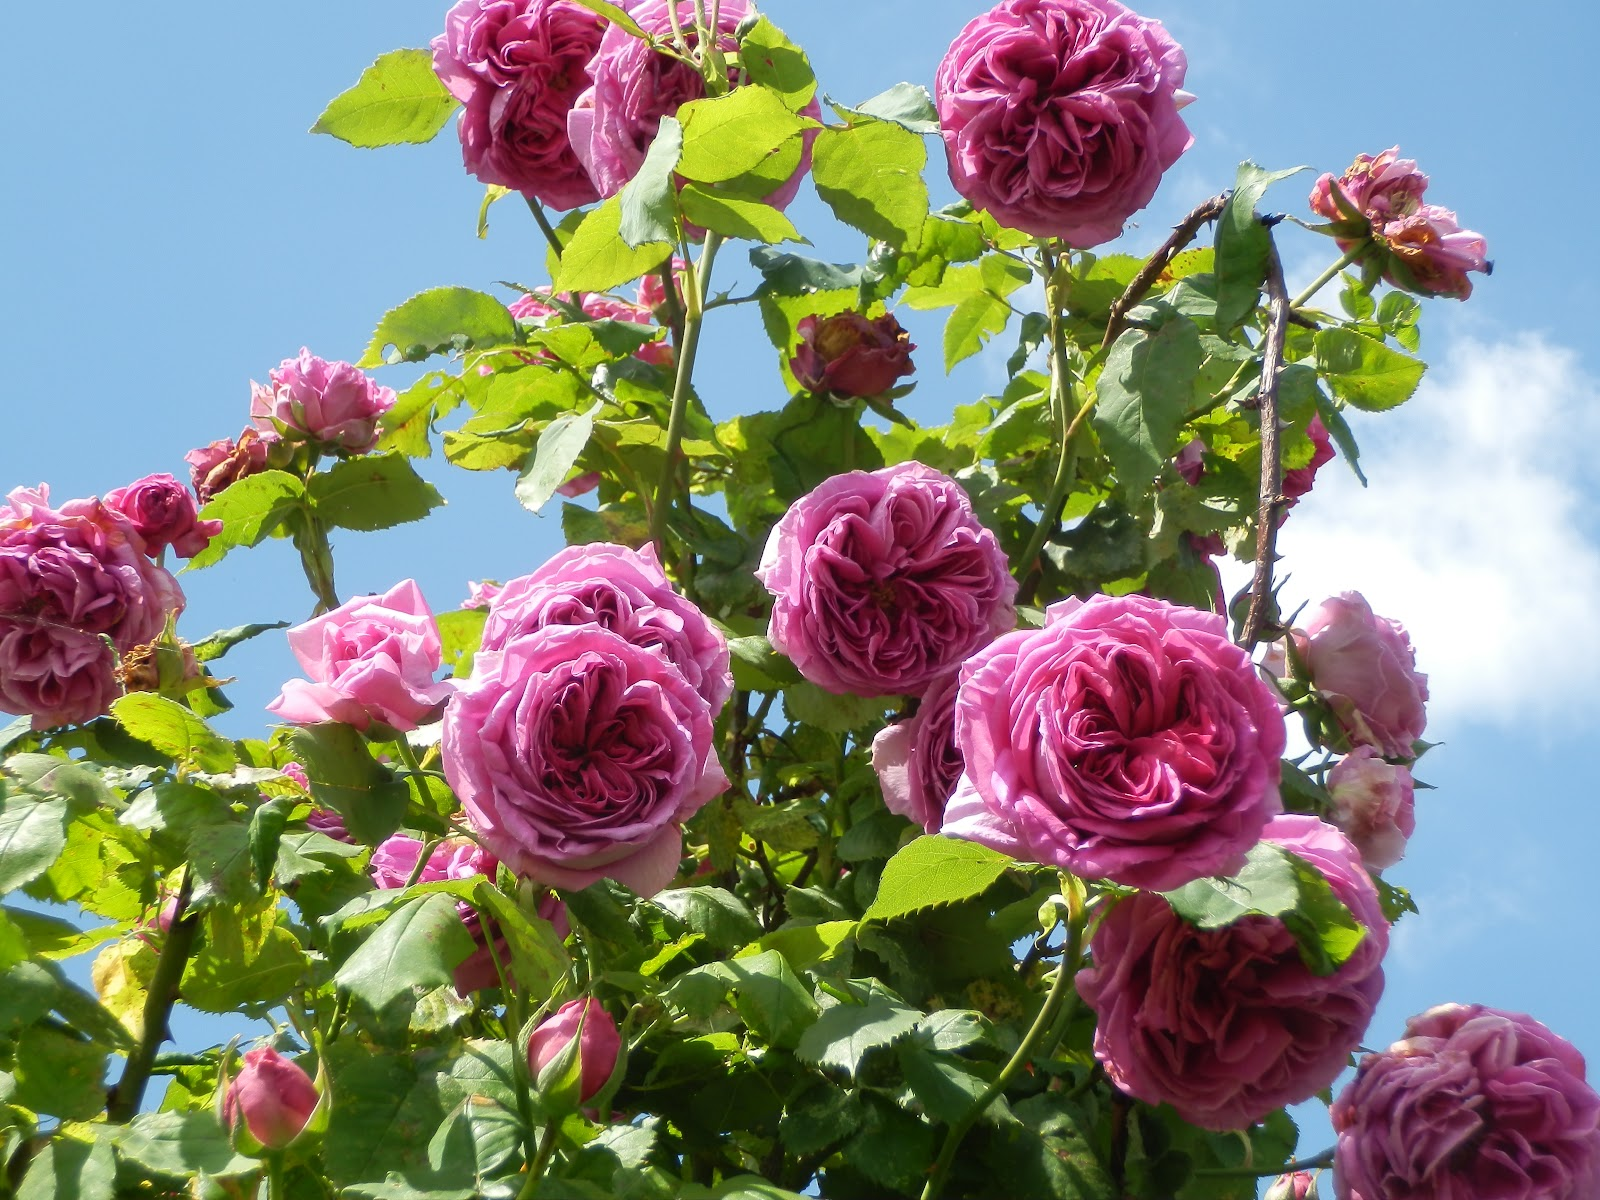 The Most Beautiful Rose Garden In The World Free Here